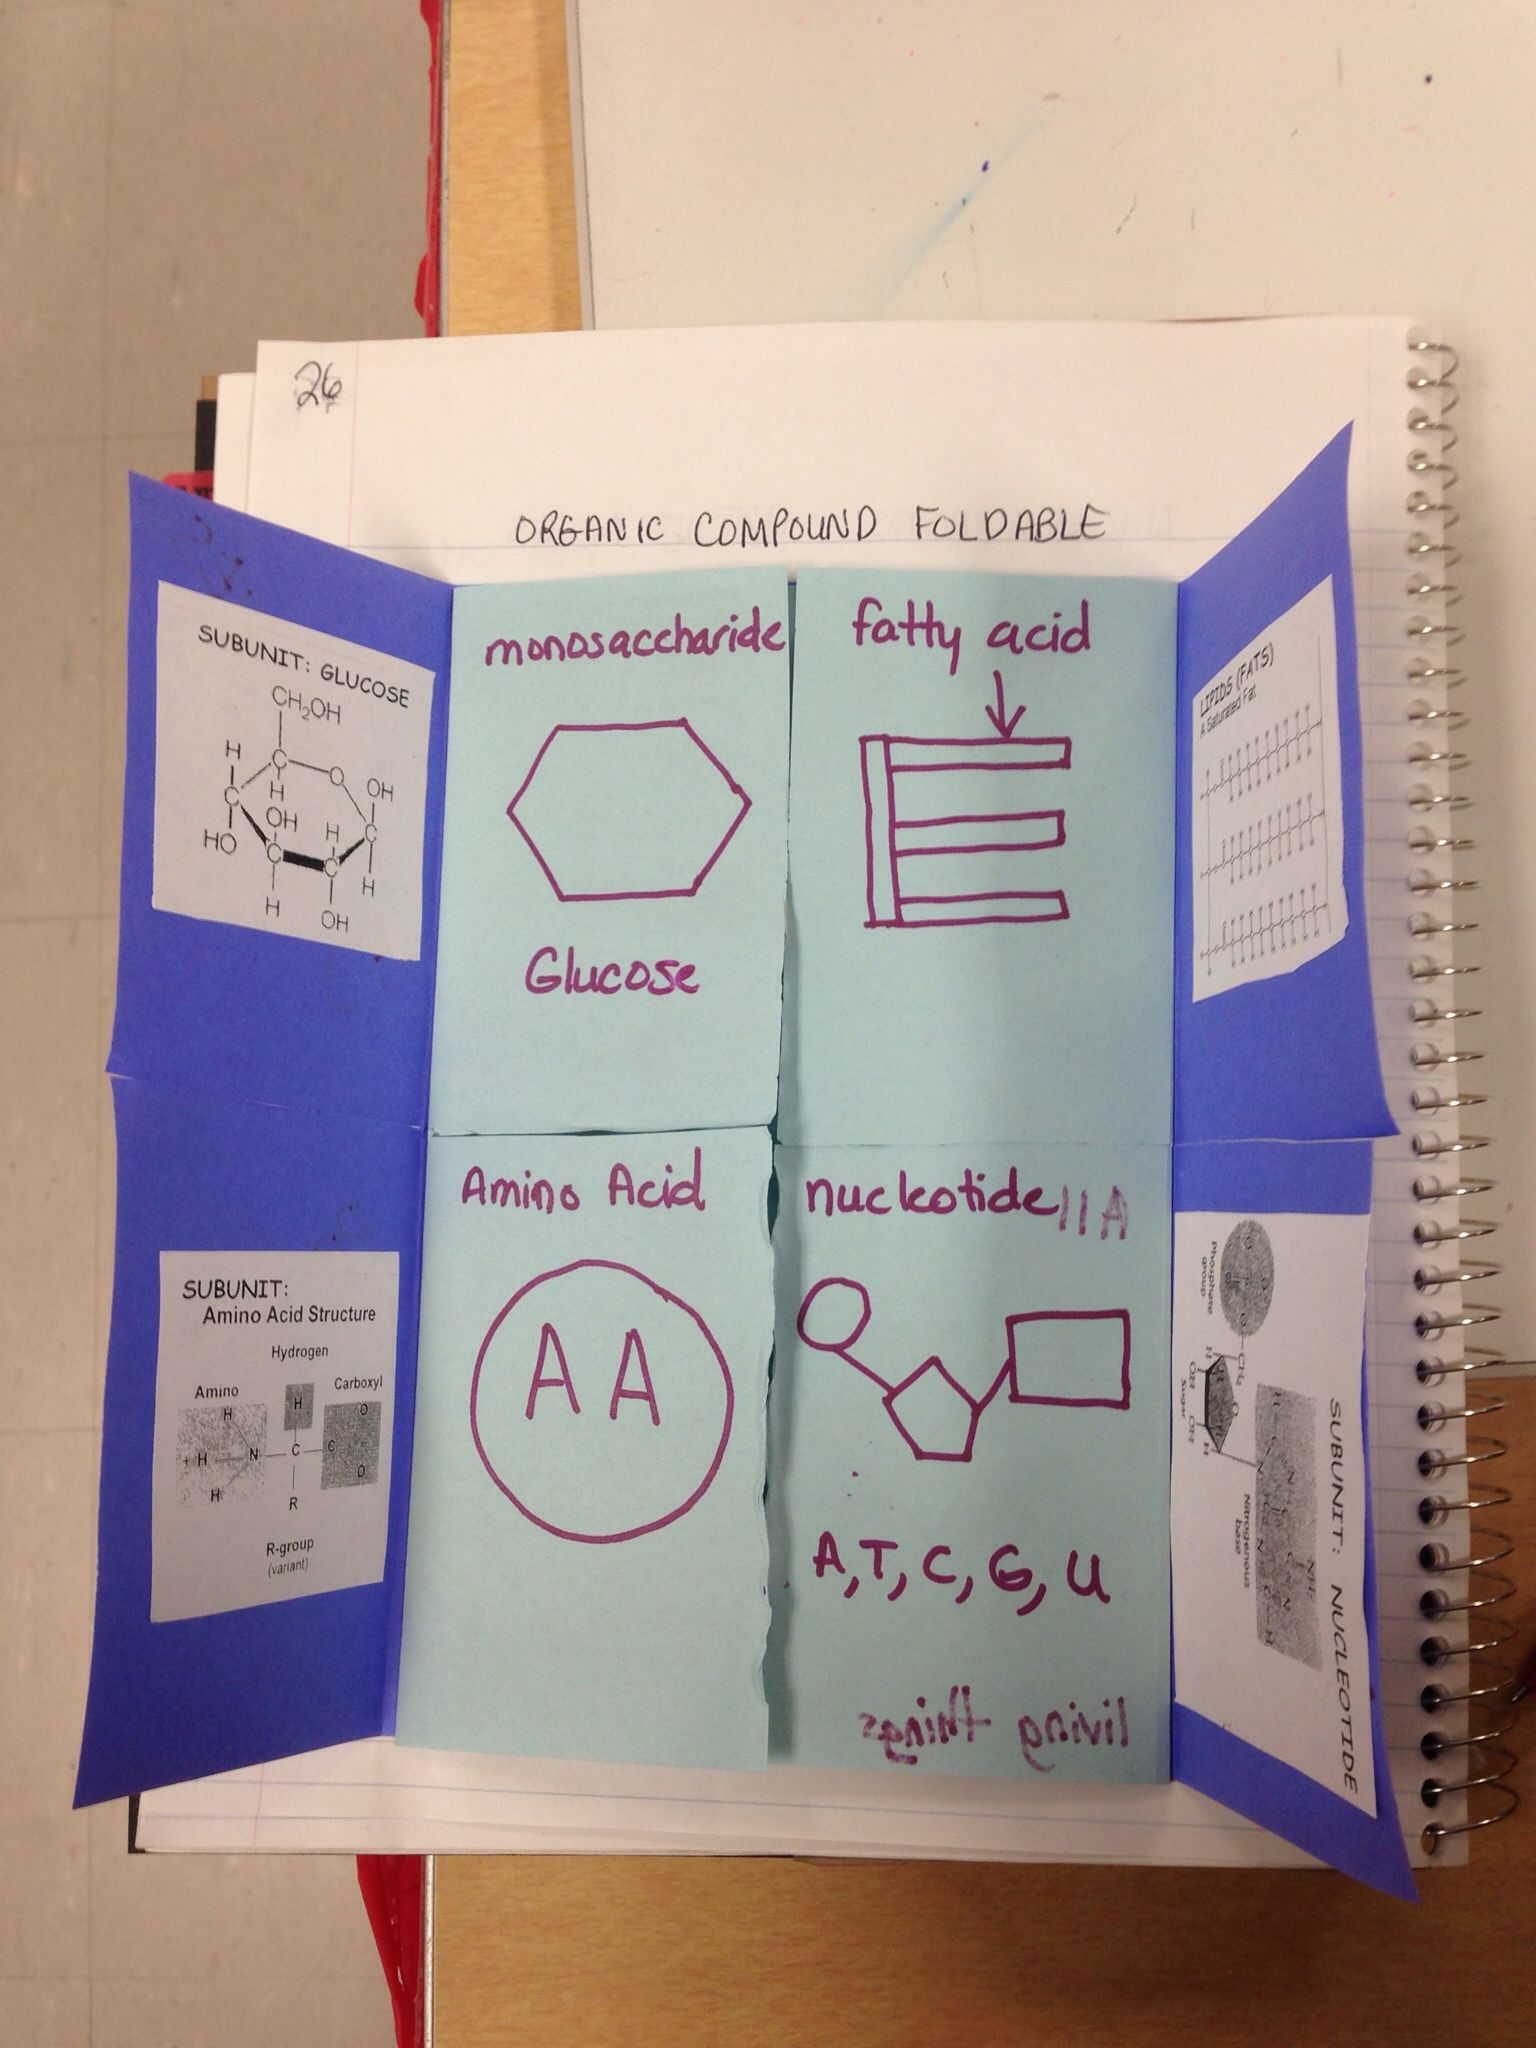 Organic Compounds Foldable Foldable